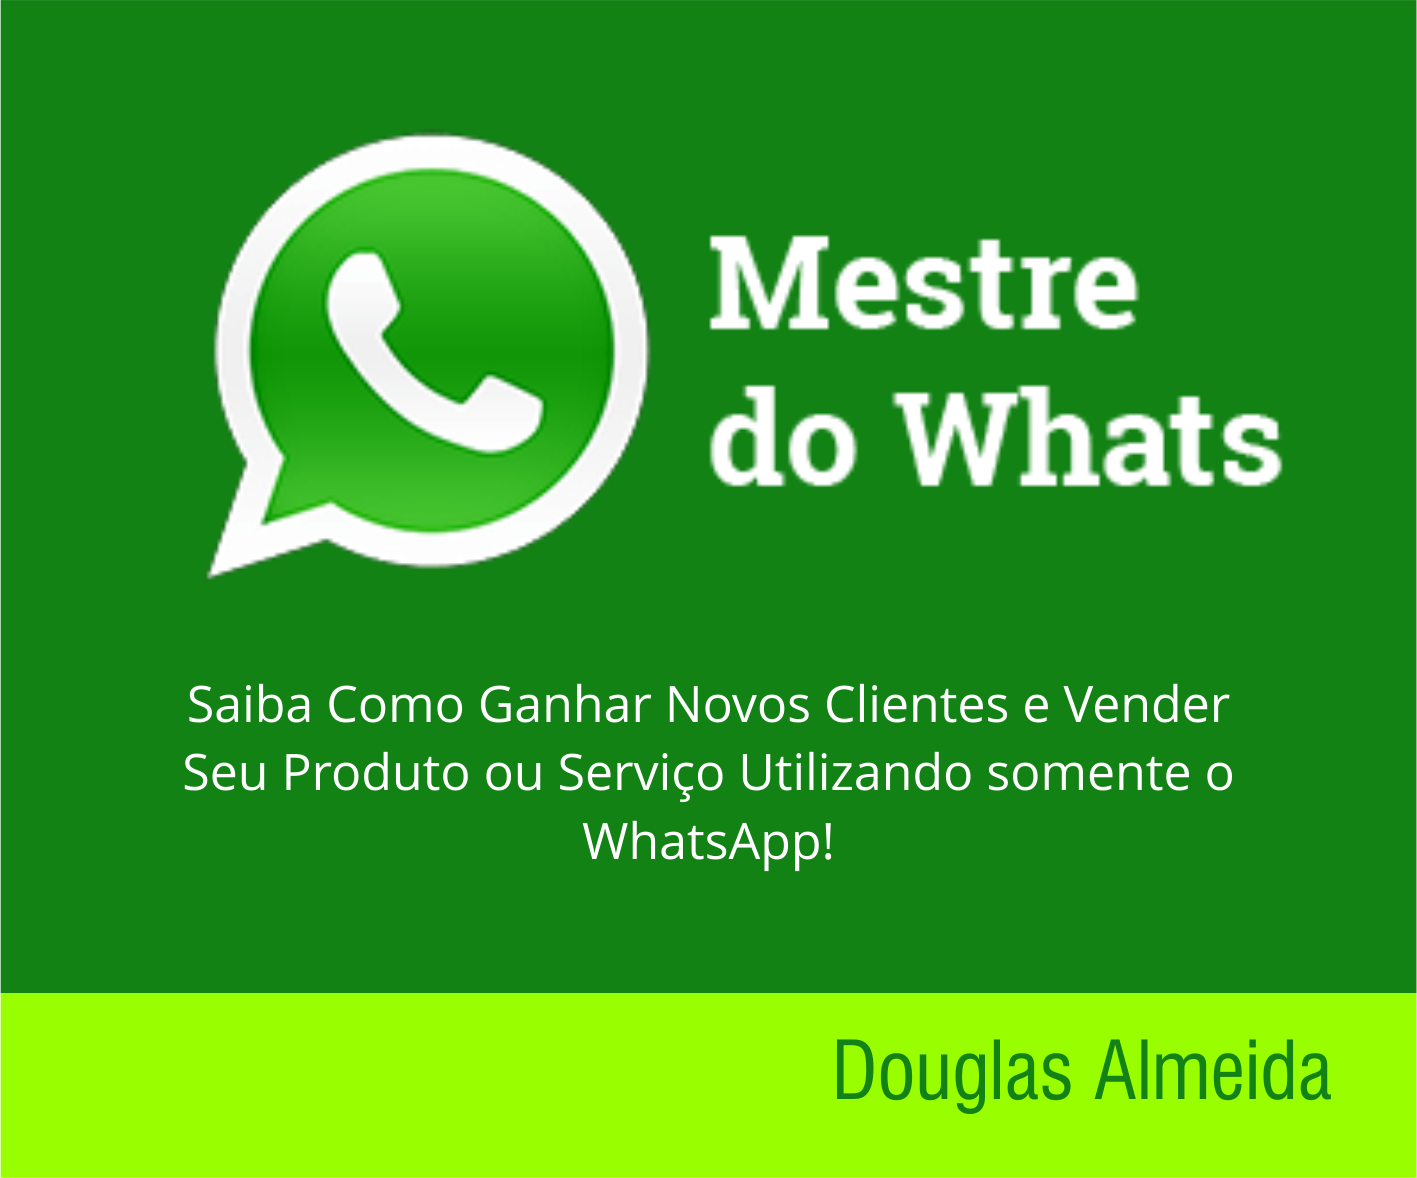 MESTRE DO WHATS – Curso de Whatsapp Marketing